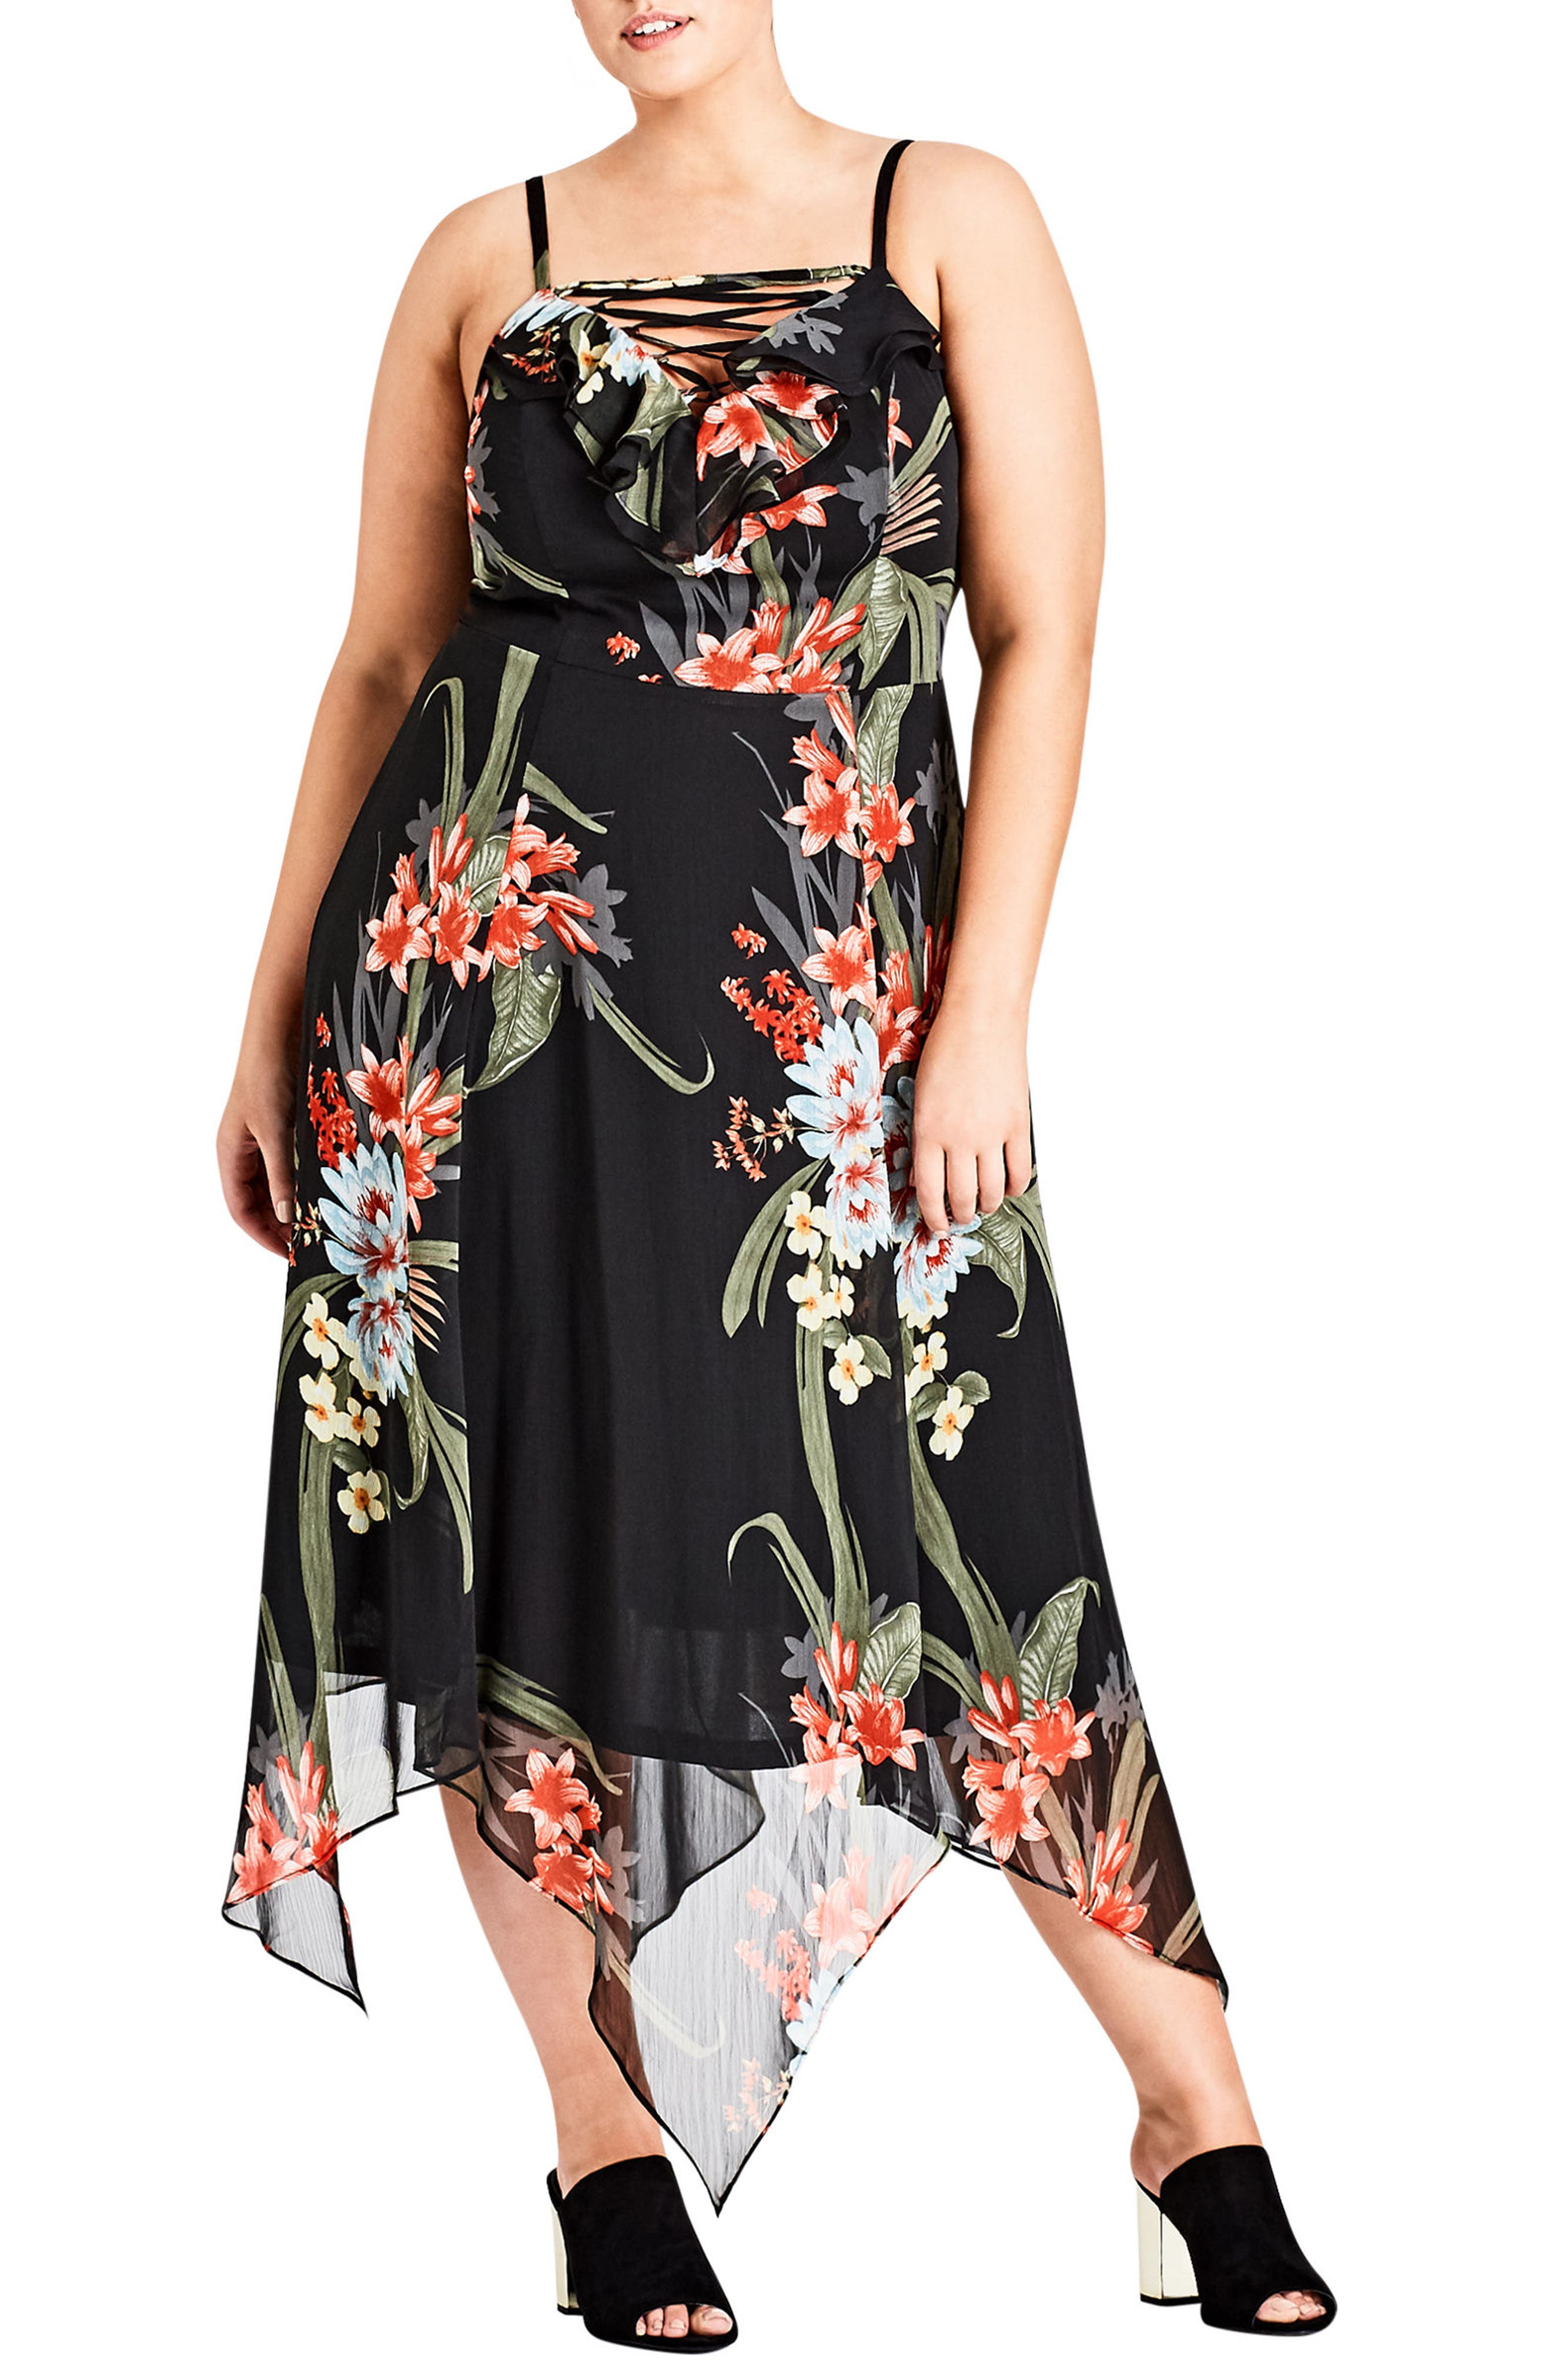 Floridity Sundress,                         Main,                         color, Black